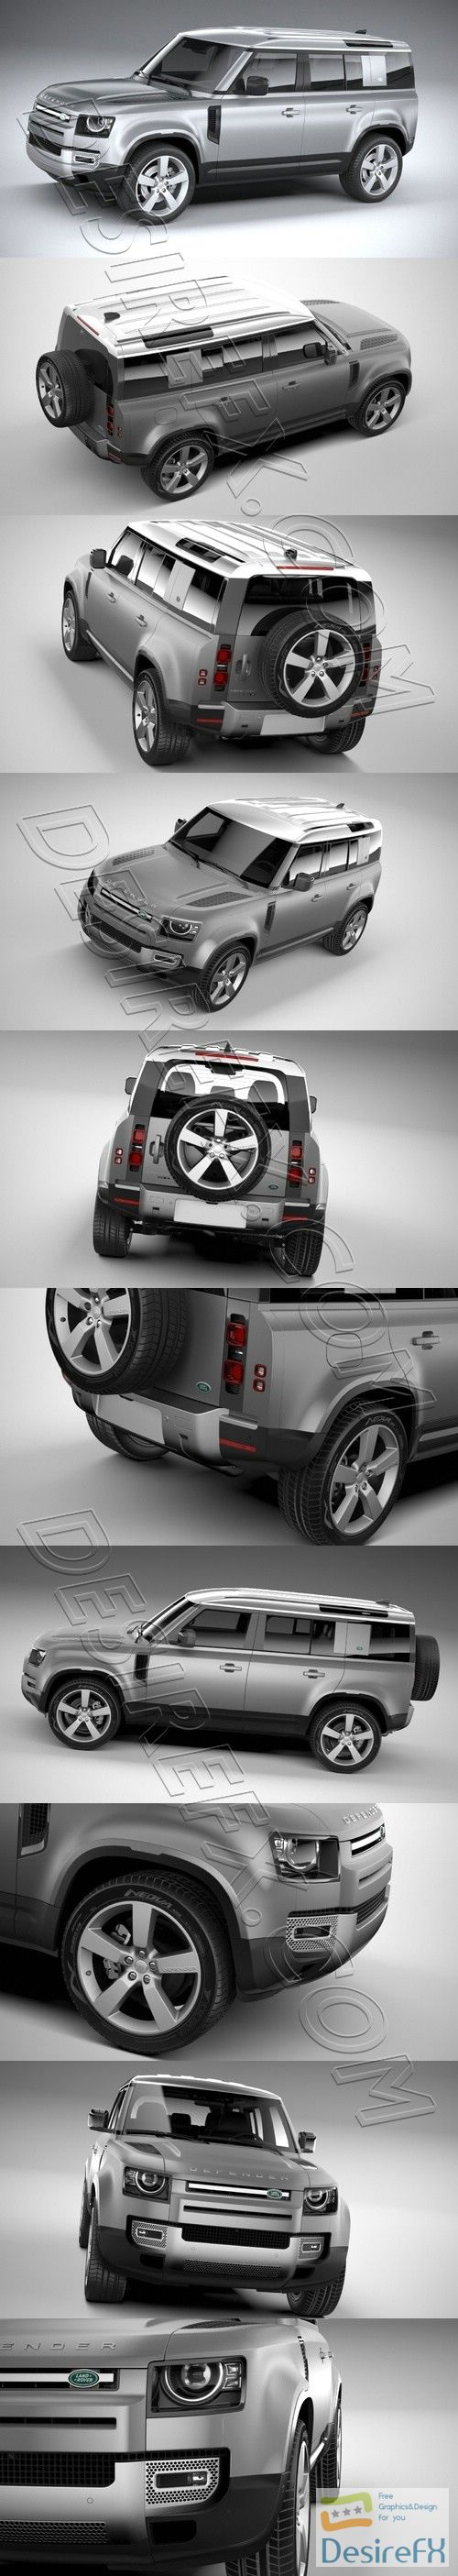 Land Rover Defender 110 2020 3D Model